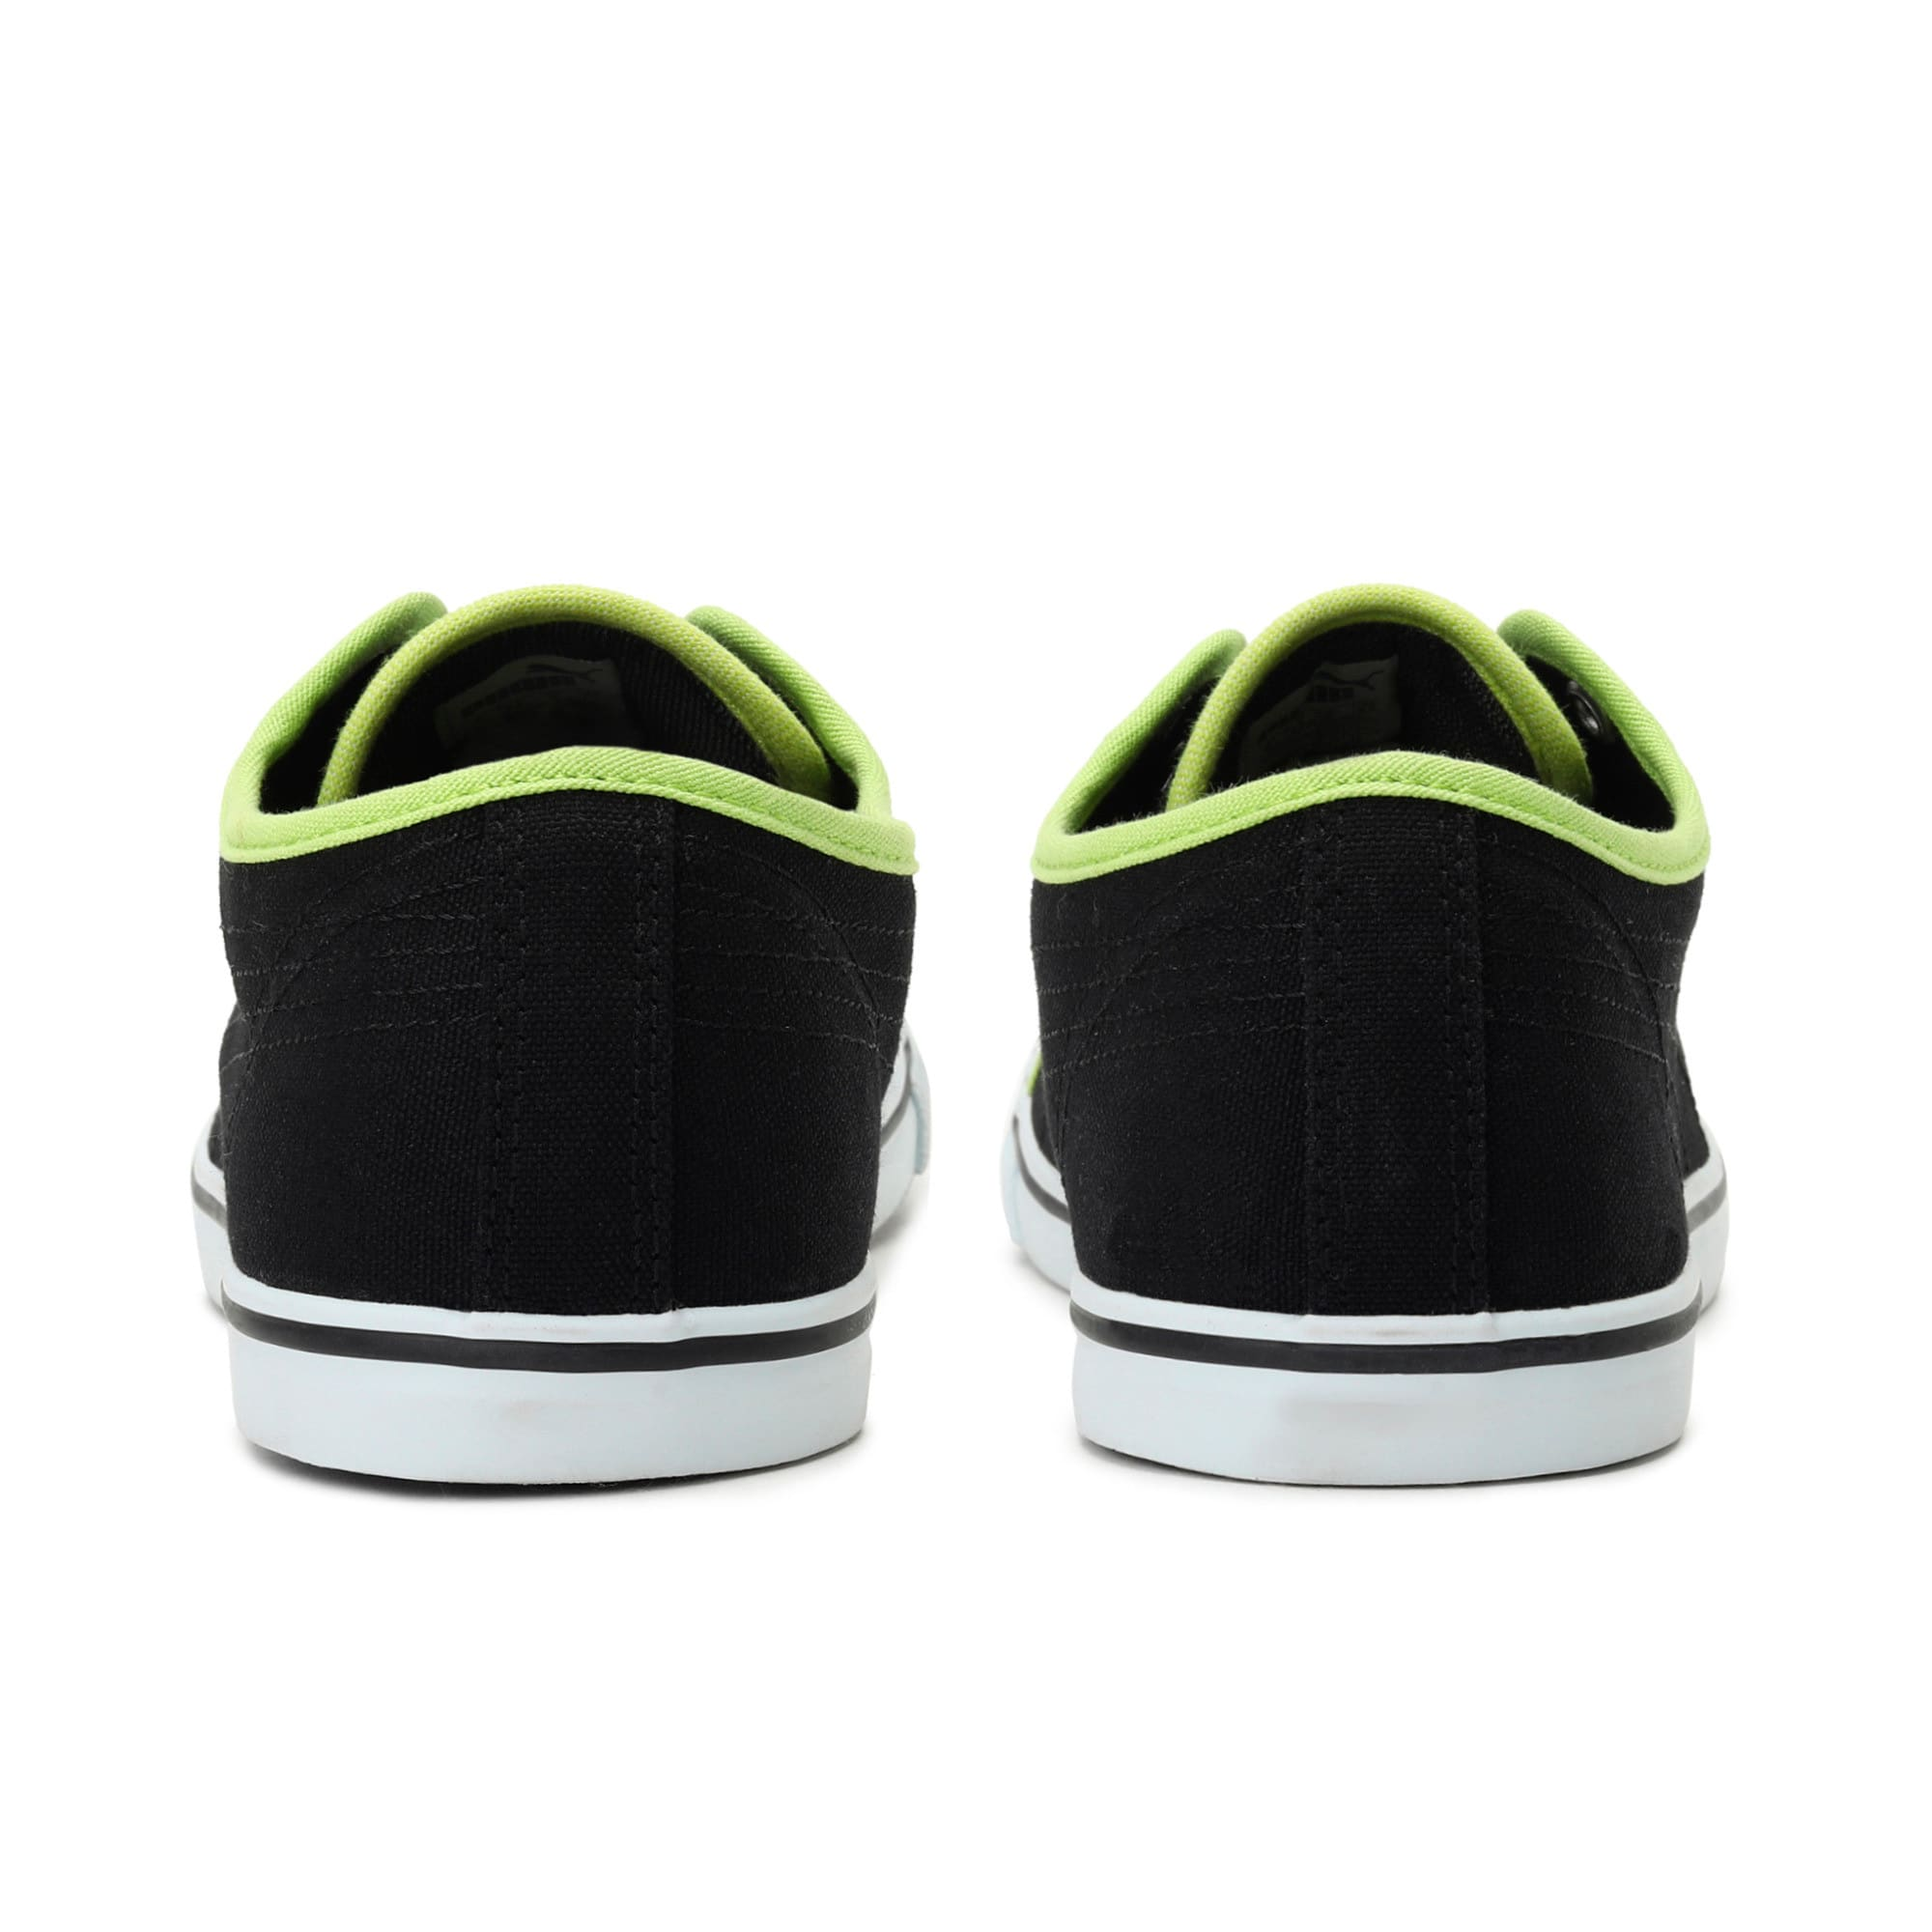 Thumbnail 4 of Puma Streetballer DP, Black-Puma White-Limepunch, medium-IND